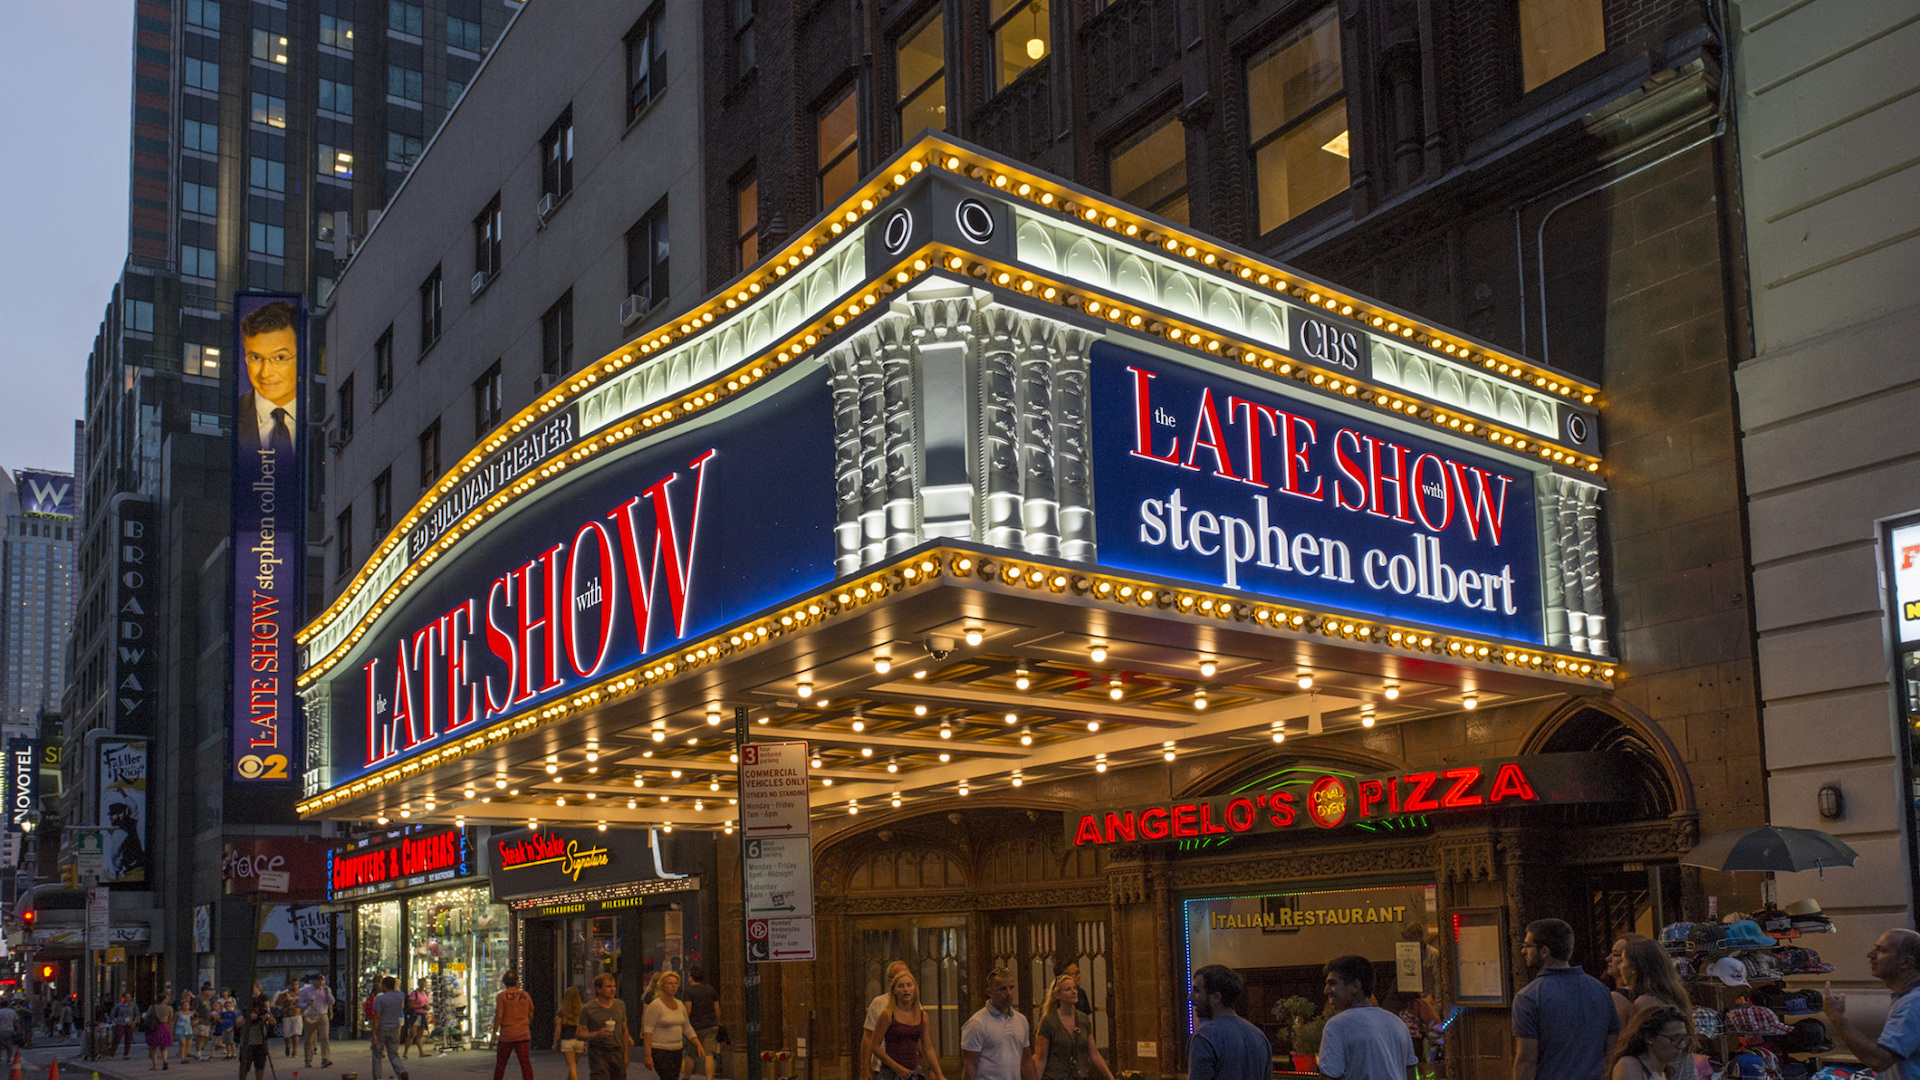 Sign Up For The The Late Show Newsletter!